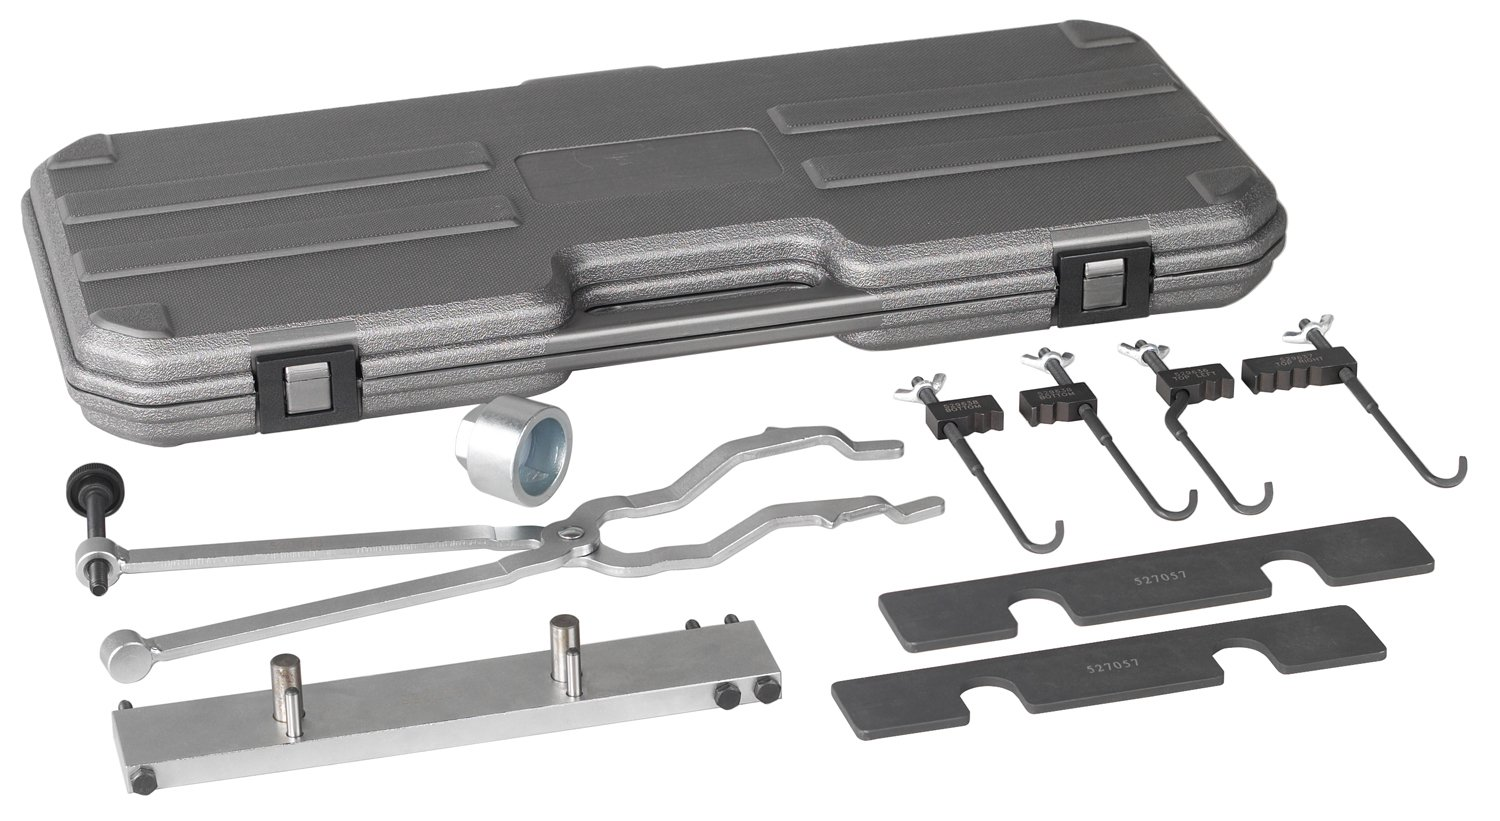 OTC (6686 Cam Tool Set - GM NorthStar V8